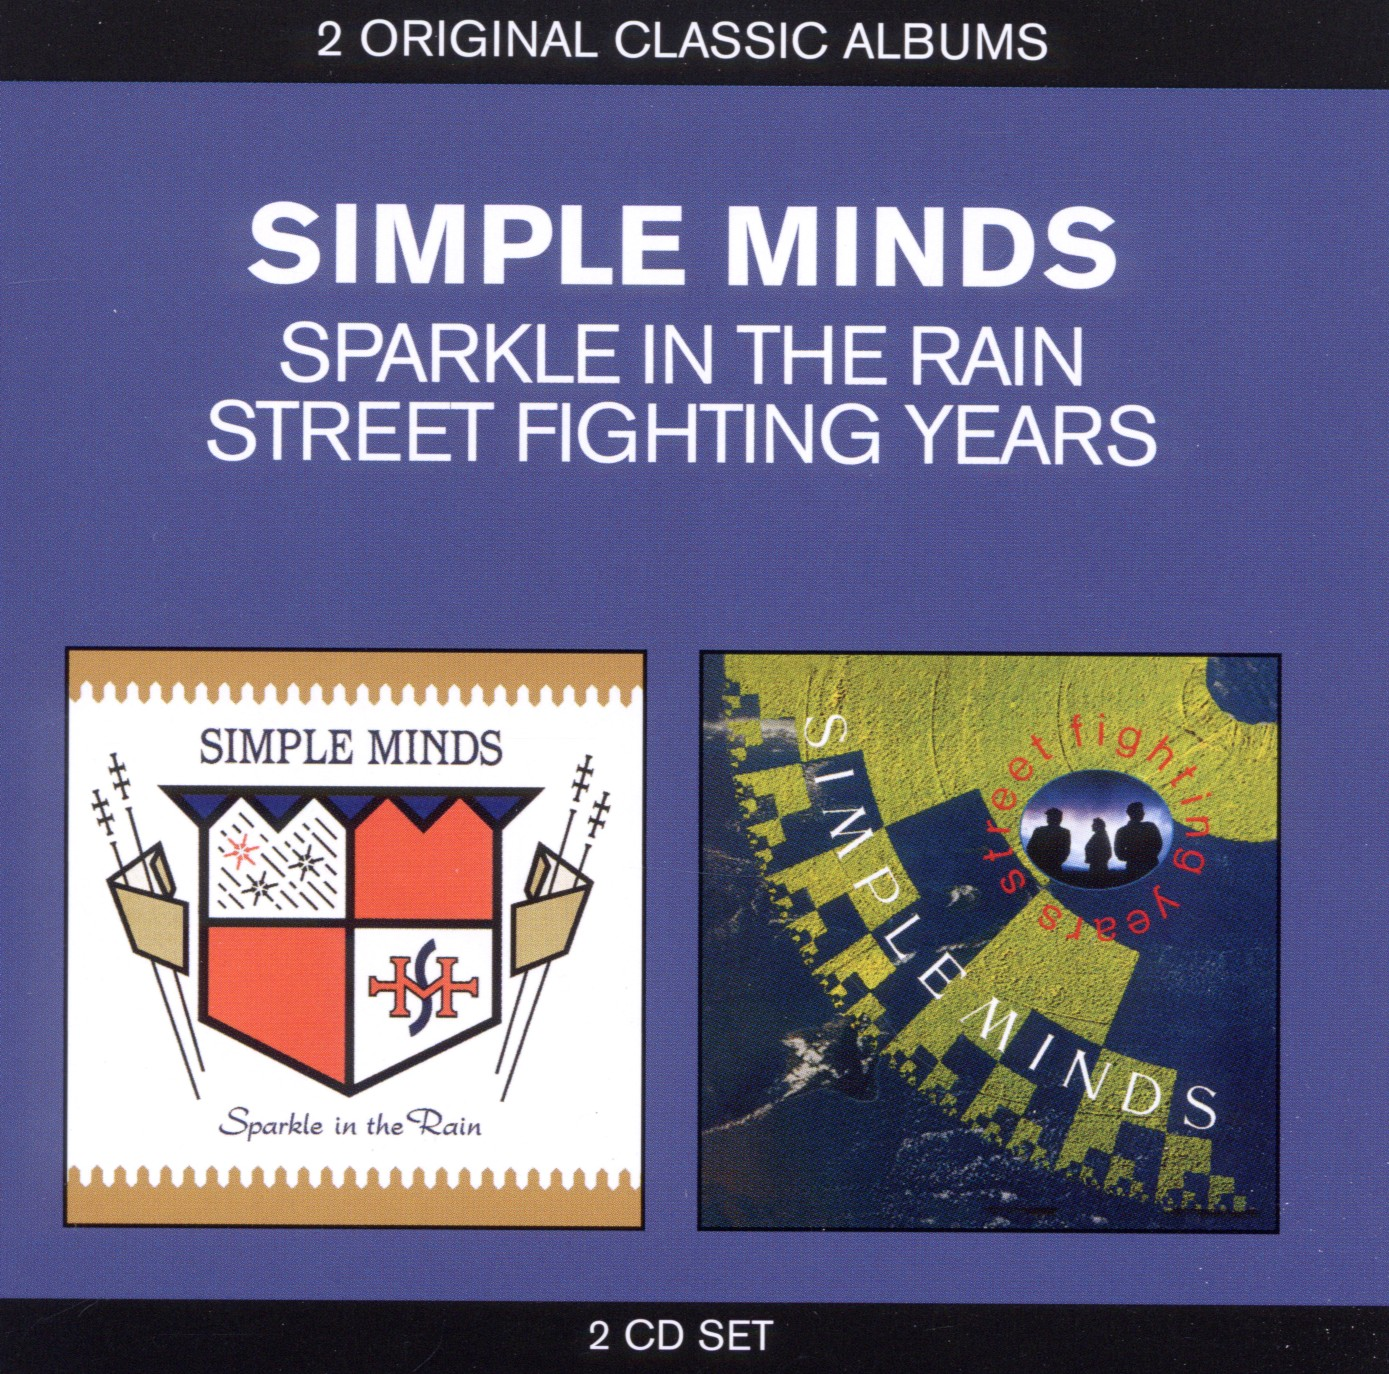 SIMPLE-MINDS-CLASSIC-ALBUMS-2IN1